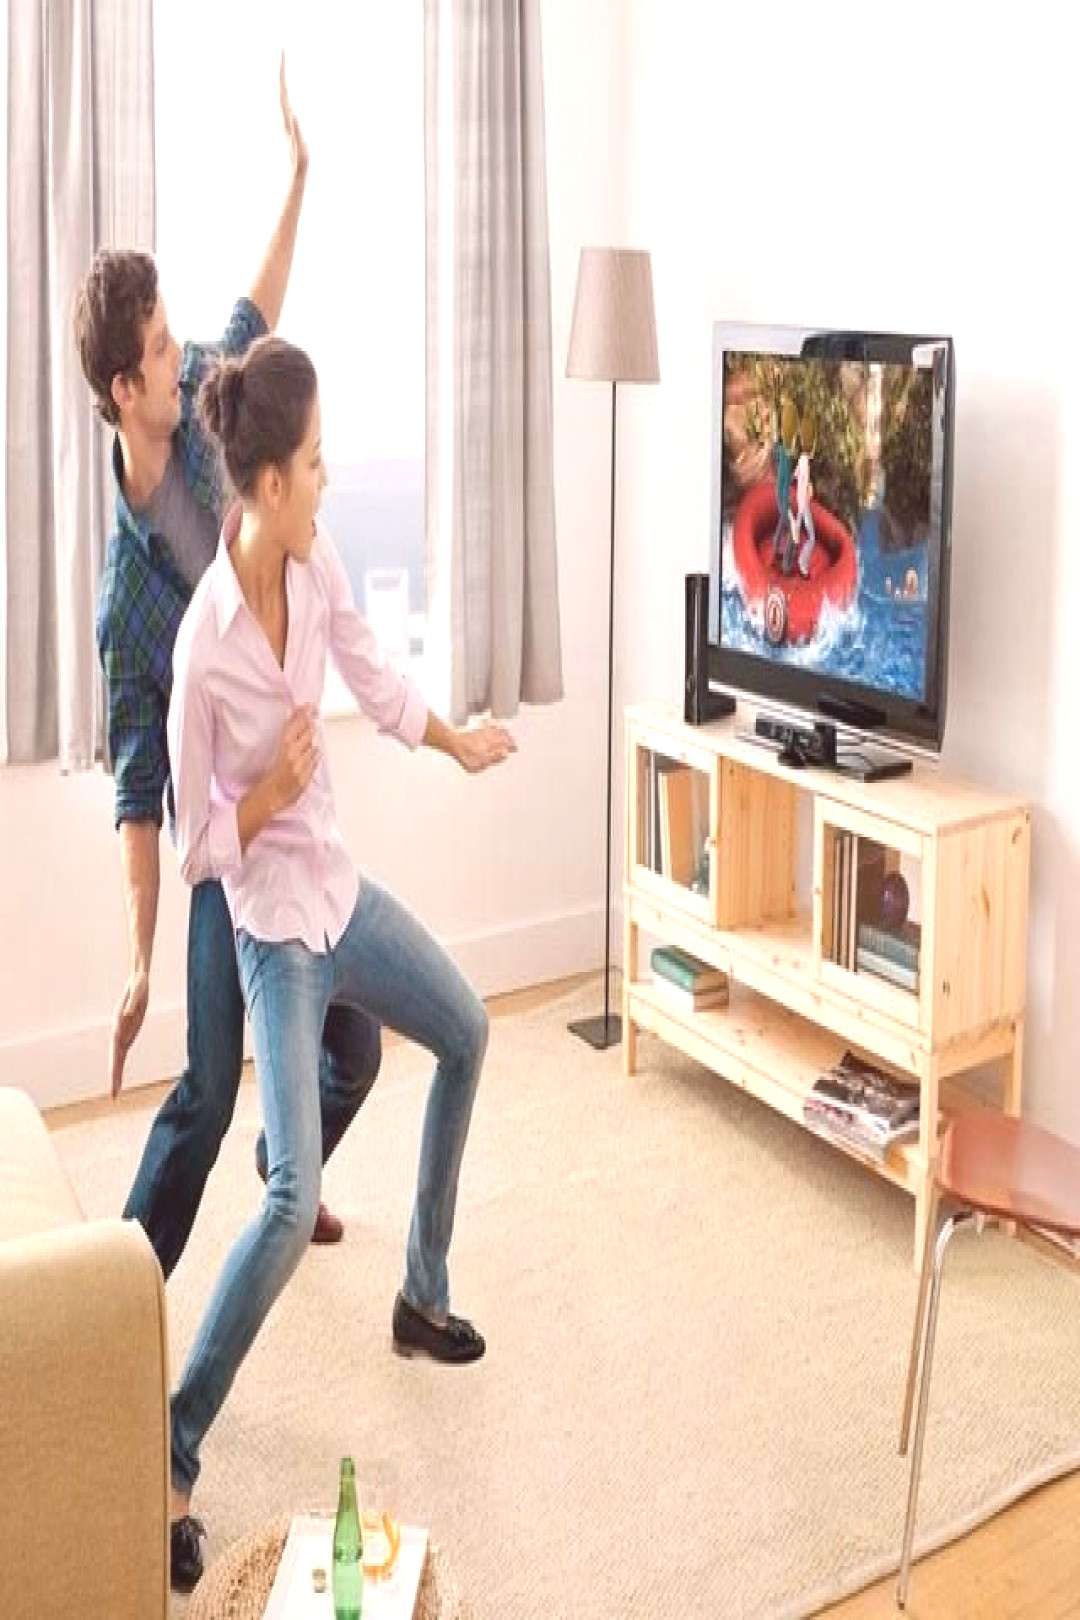 How I learned to stop worrying and love Microsofts Kinect, How I learned to stop worrying and love